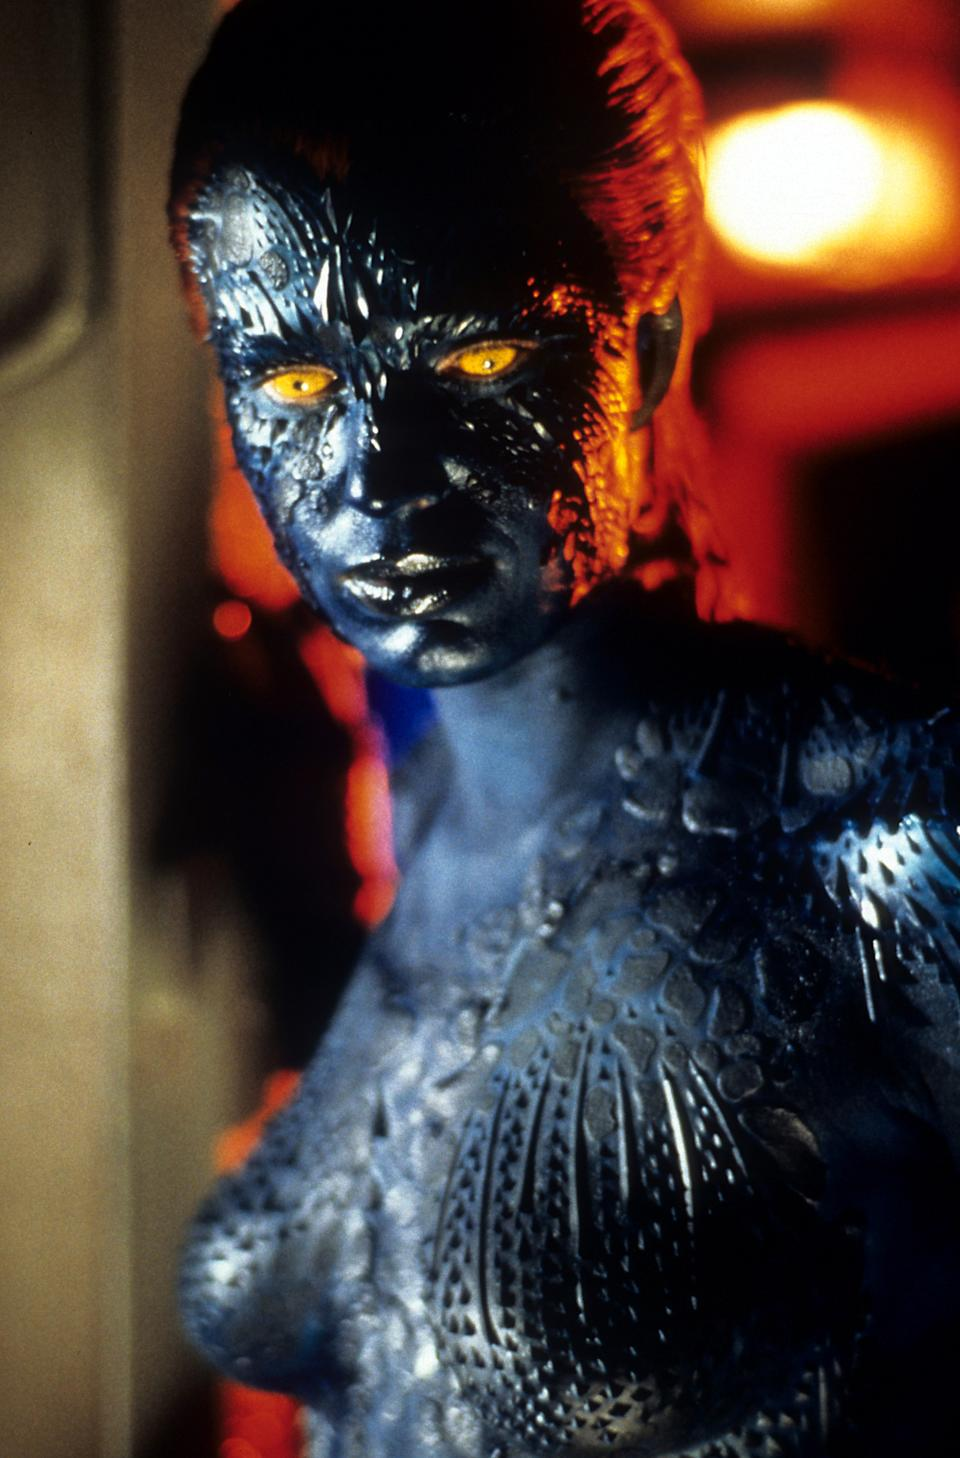 Rebecca Romijn in a scene from the film 'X-Men', 2000. (Photo by 20th Century-Fox/Getty Images)